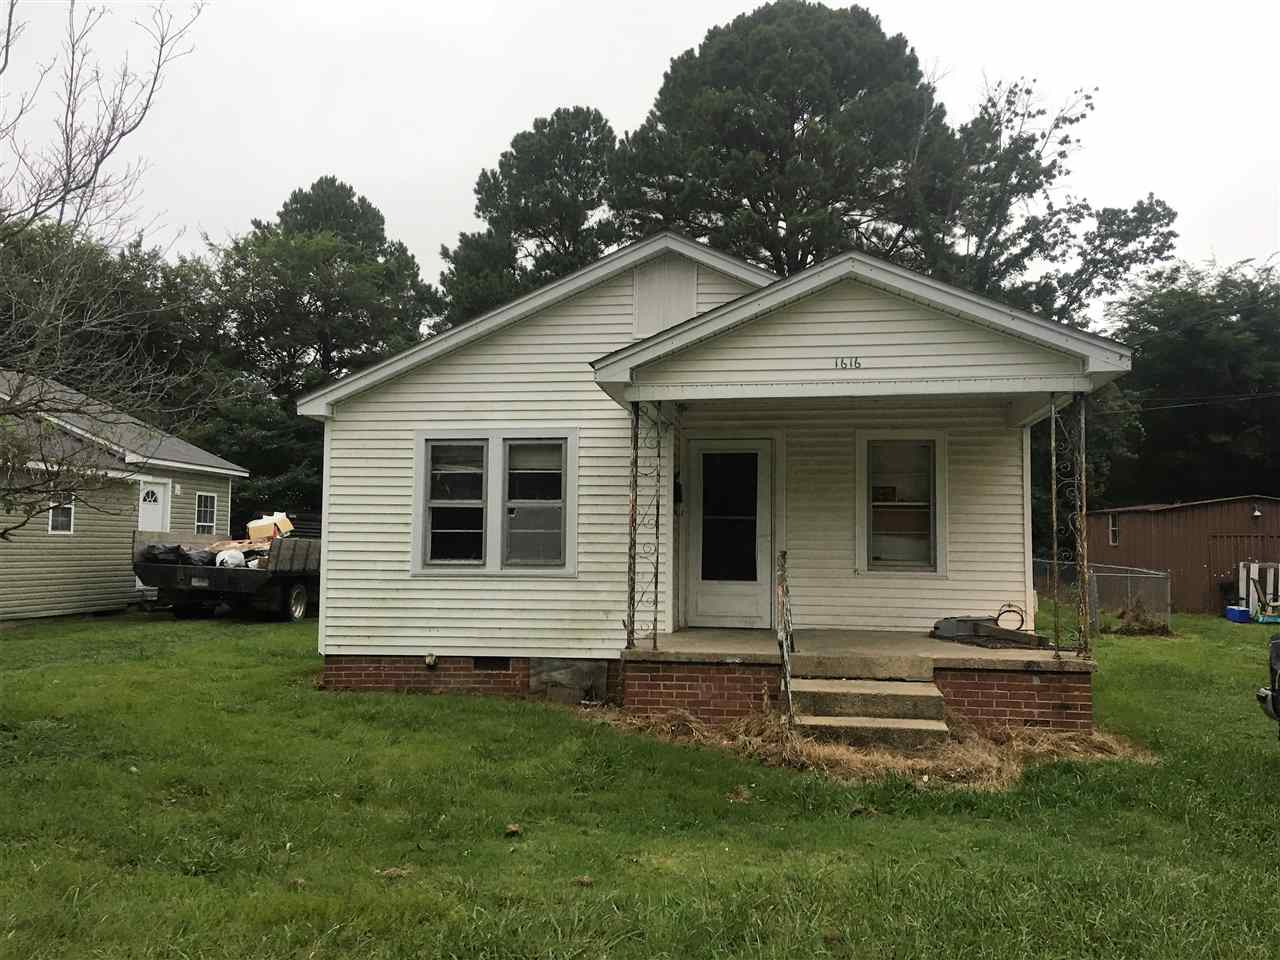 1616 Shelby Dr,Dyersburg,Tennessee 38024,2 Bedrooms Bedrooms,1 BathroomBathrooms,Residential,1616 Shelby Dr,179083